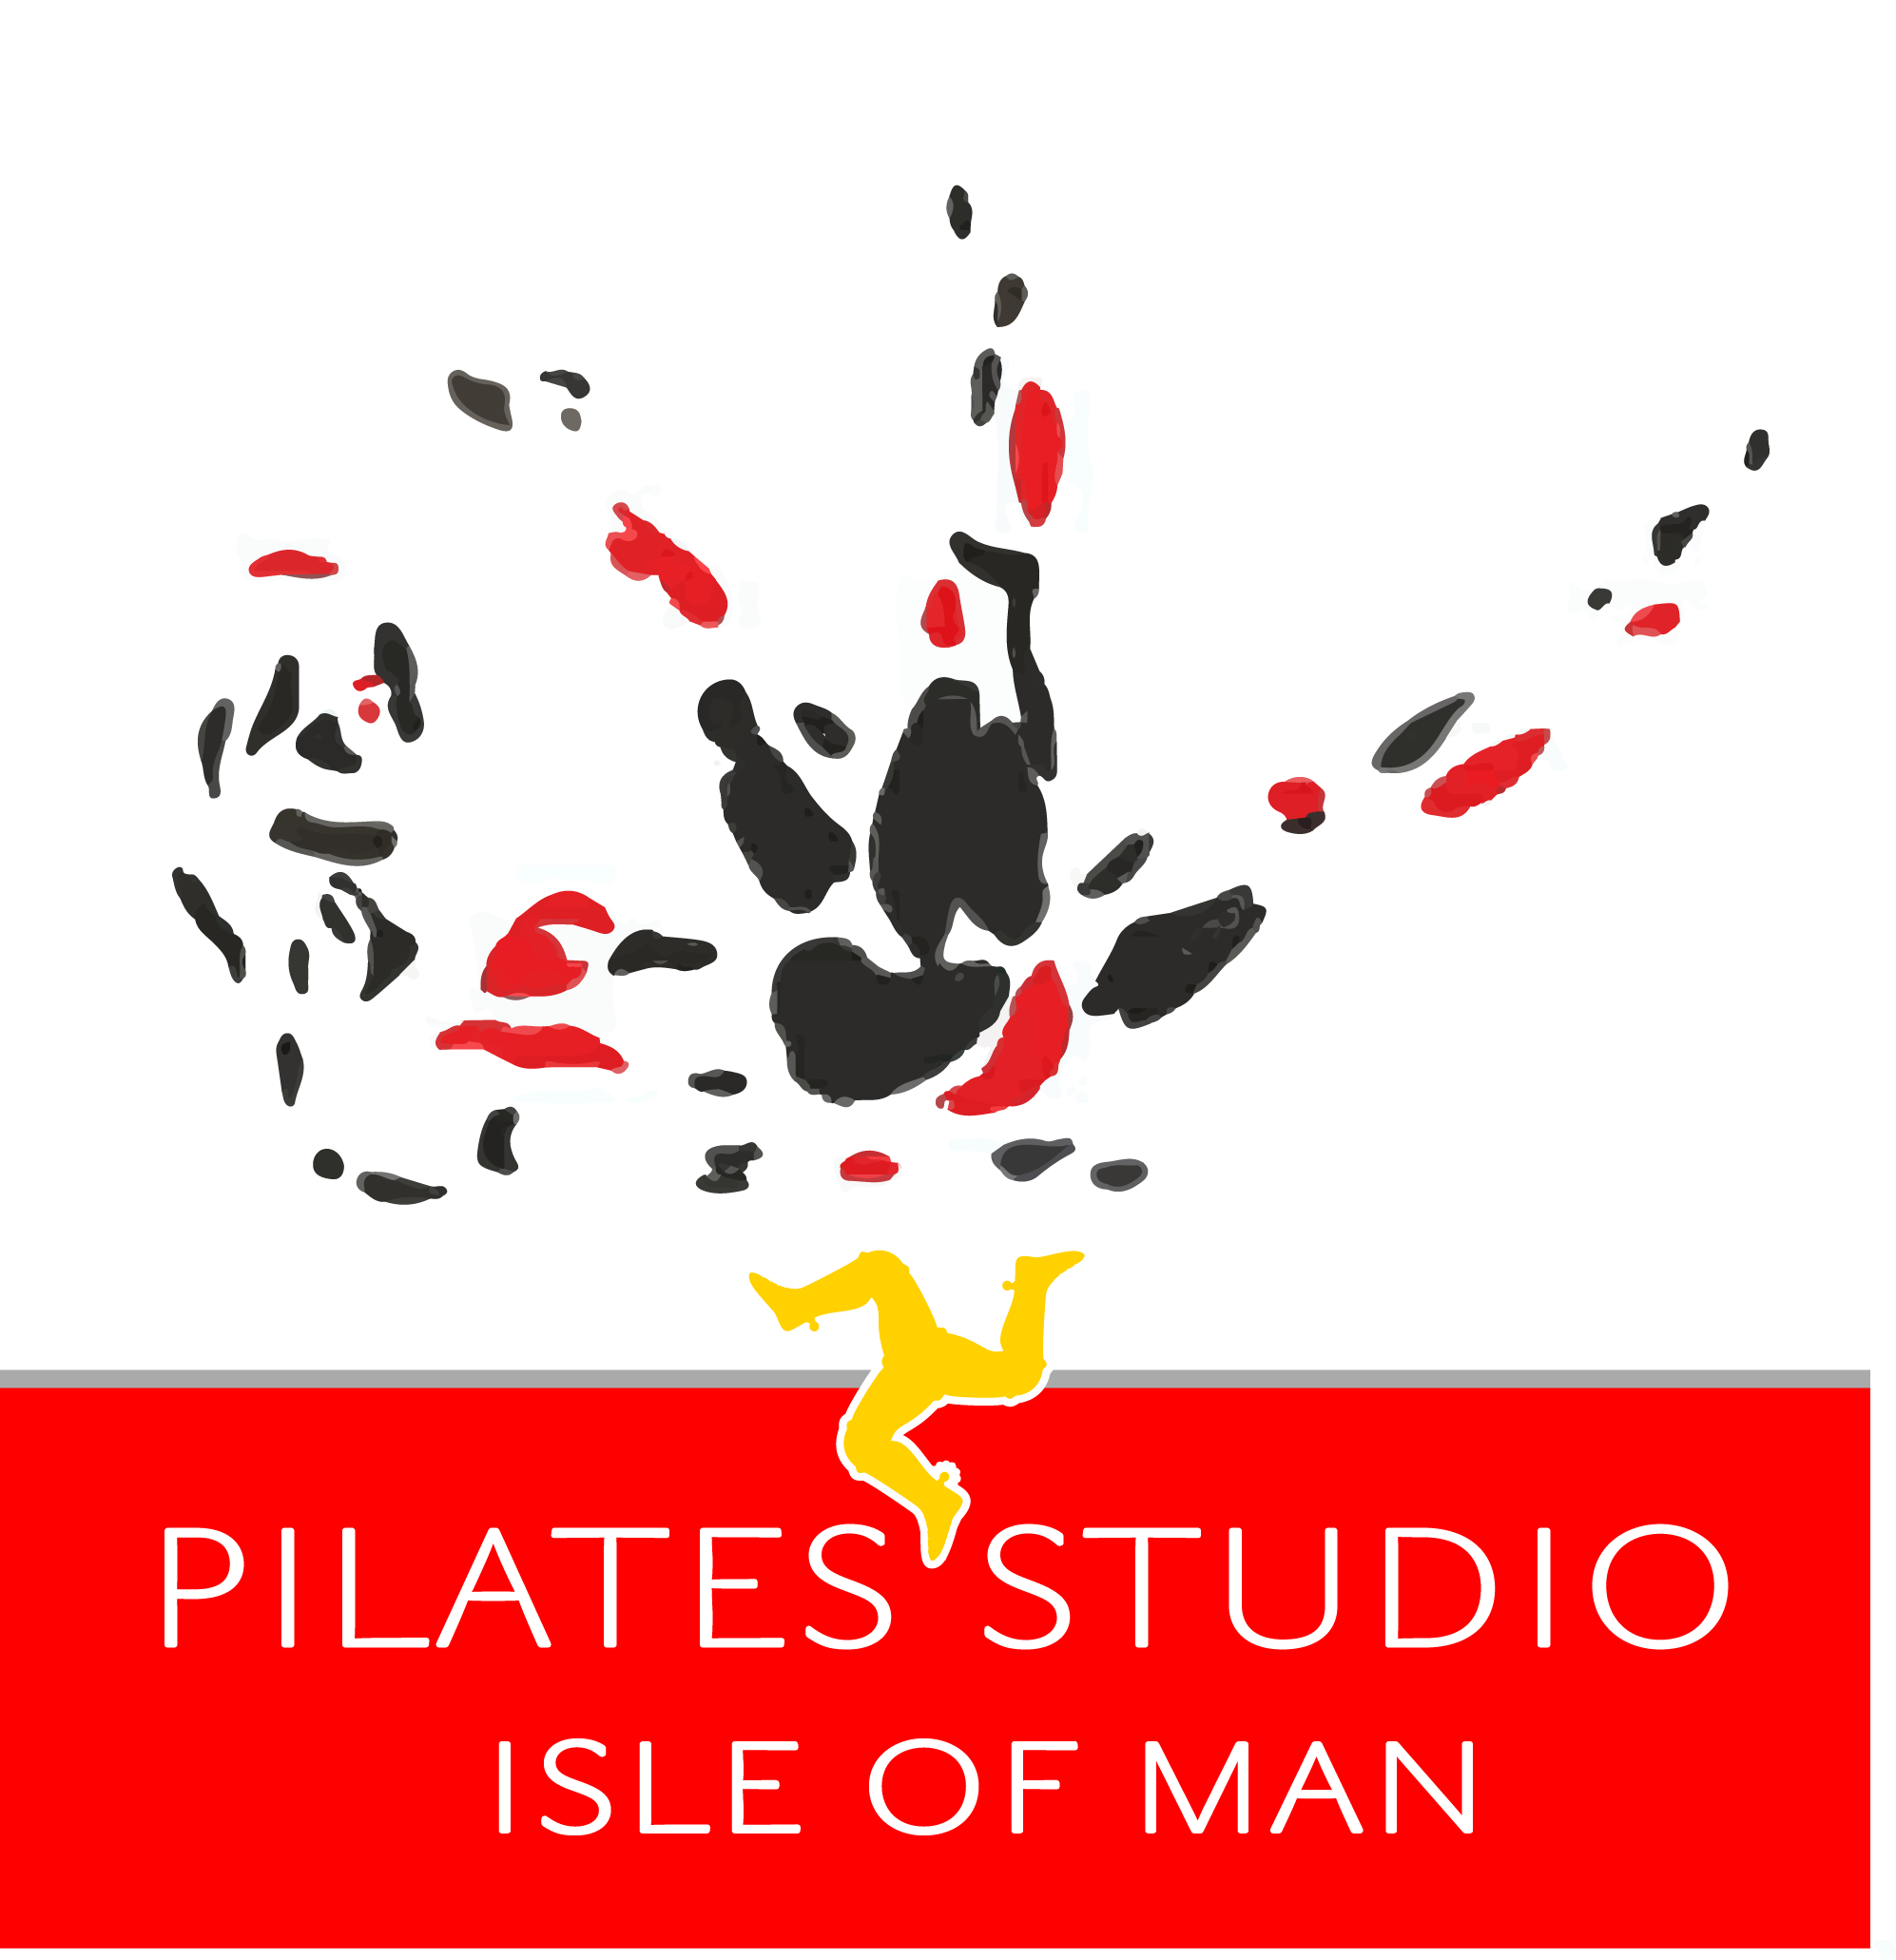 Isle of Man Pilates